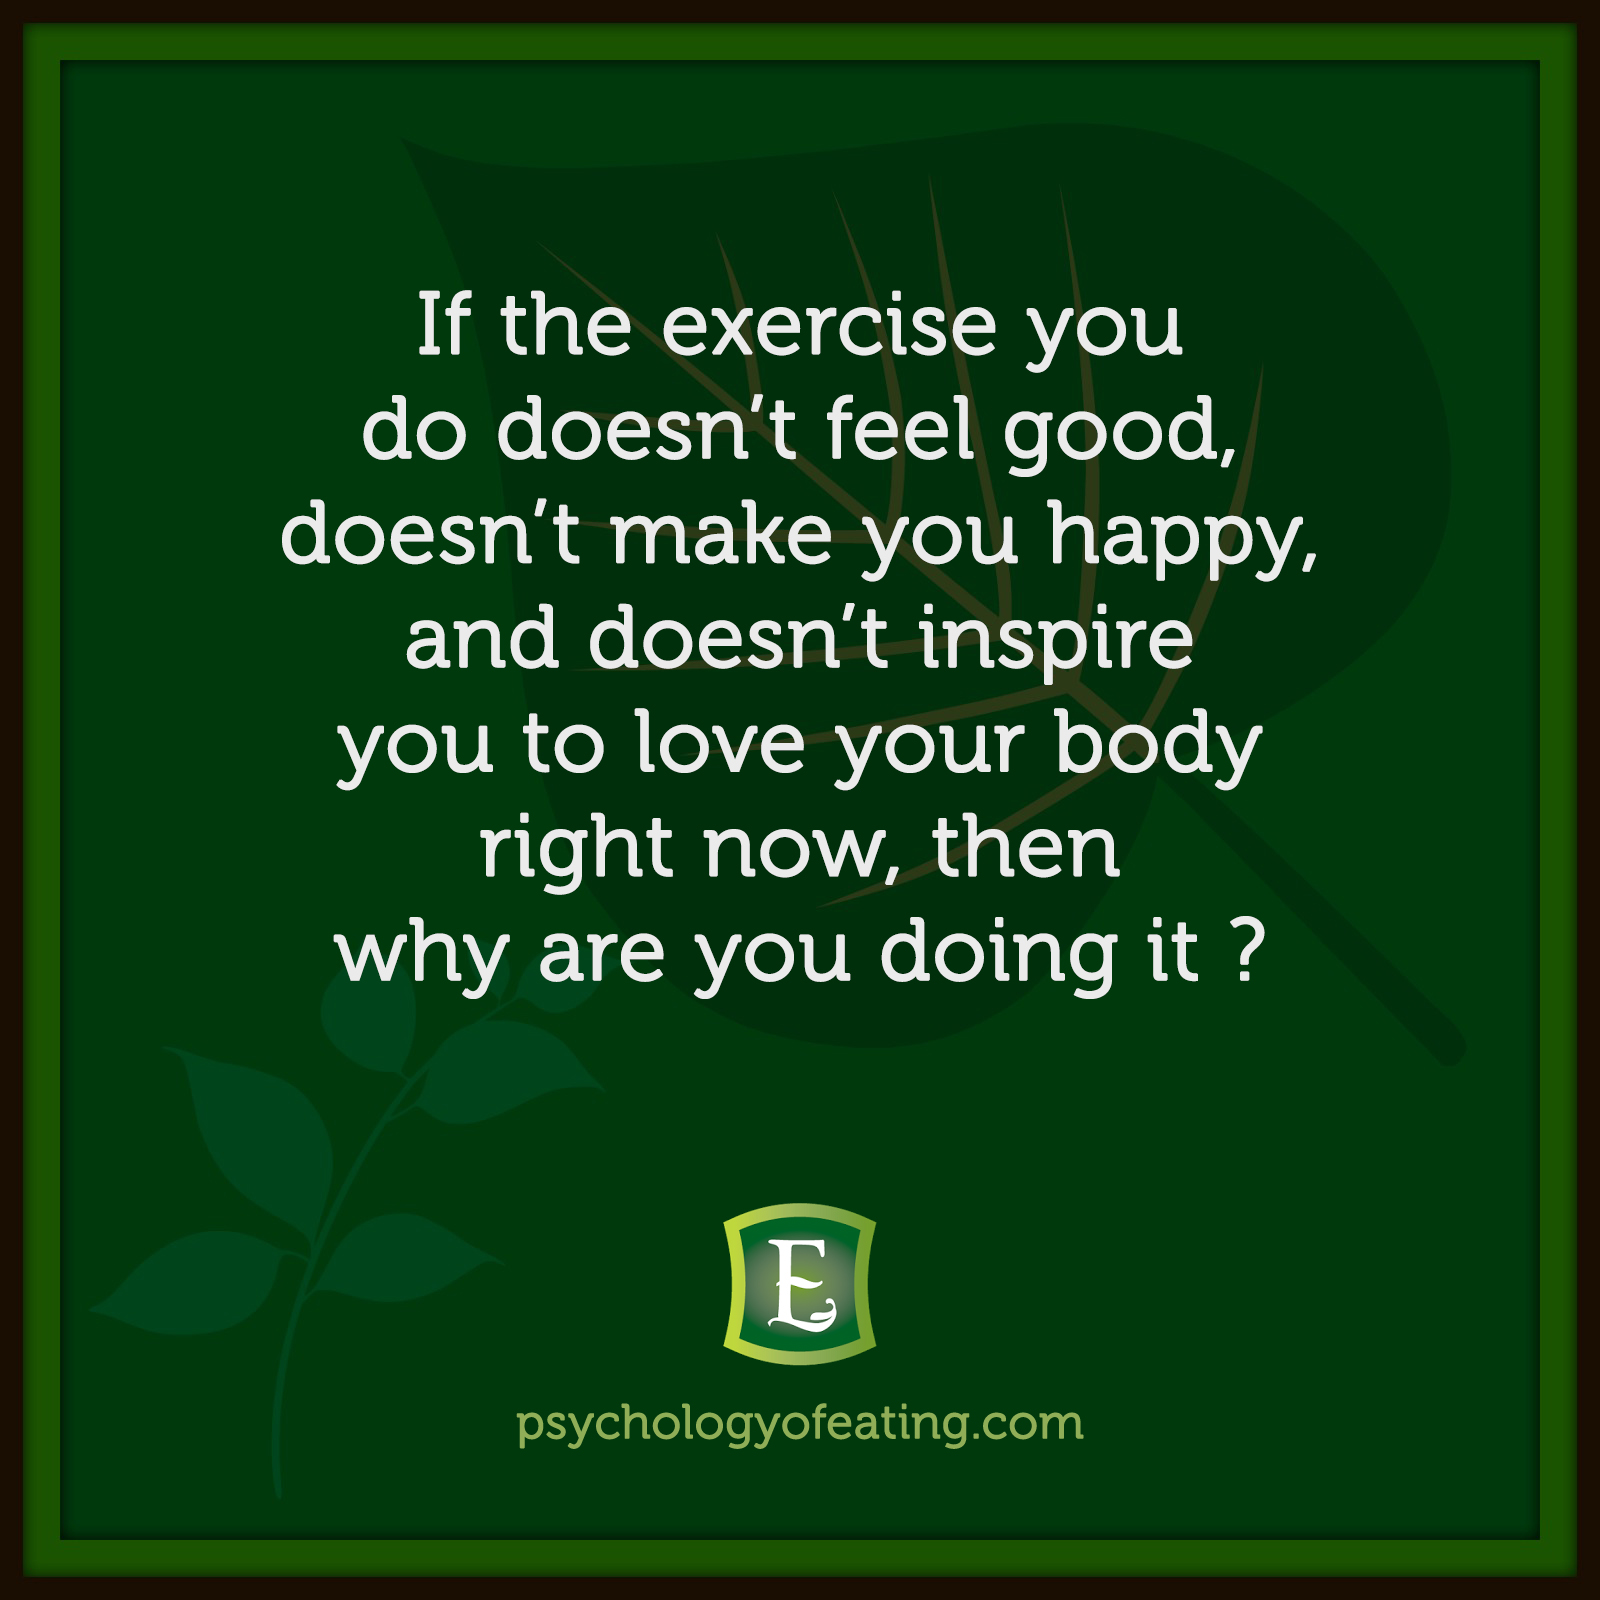 If the exercise you do doesn't feel good, doesn't make you happy, and doesn't inspire you to love your body right now, then why are you doing it? #health #nutrition #eatingpsychology #IPE